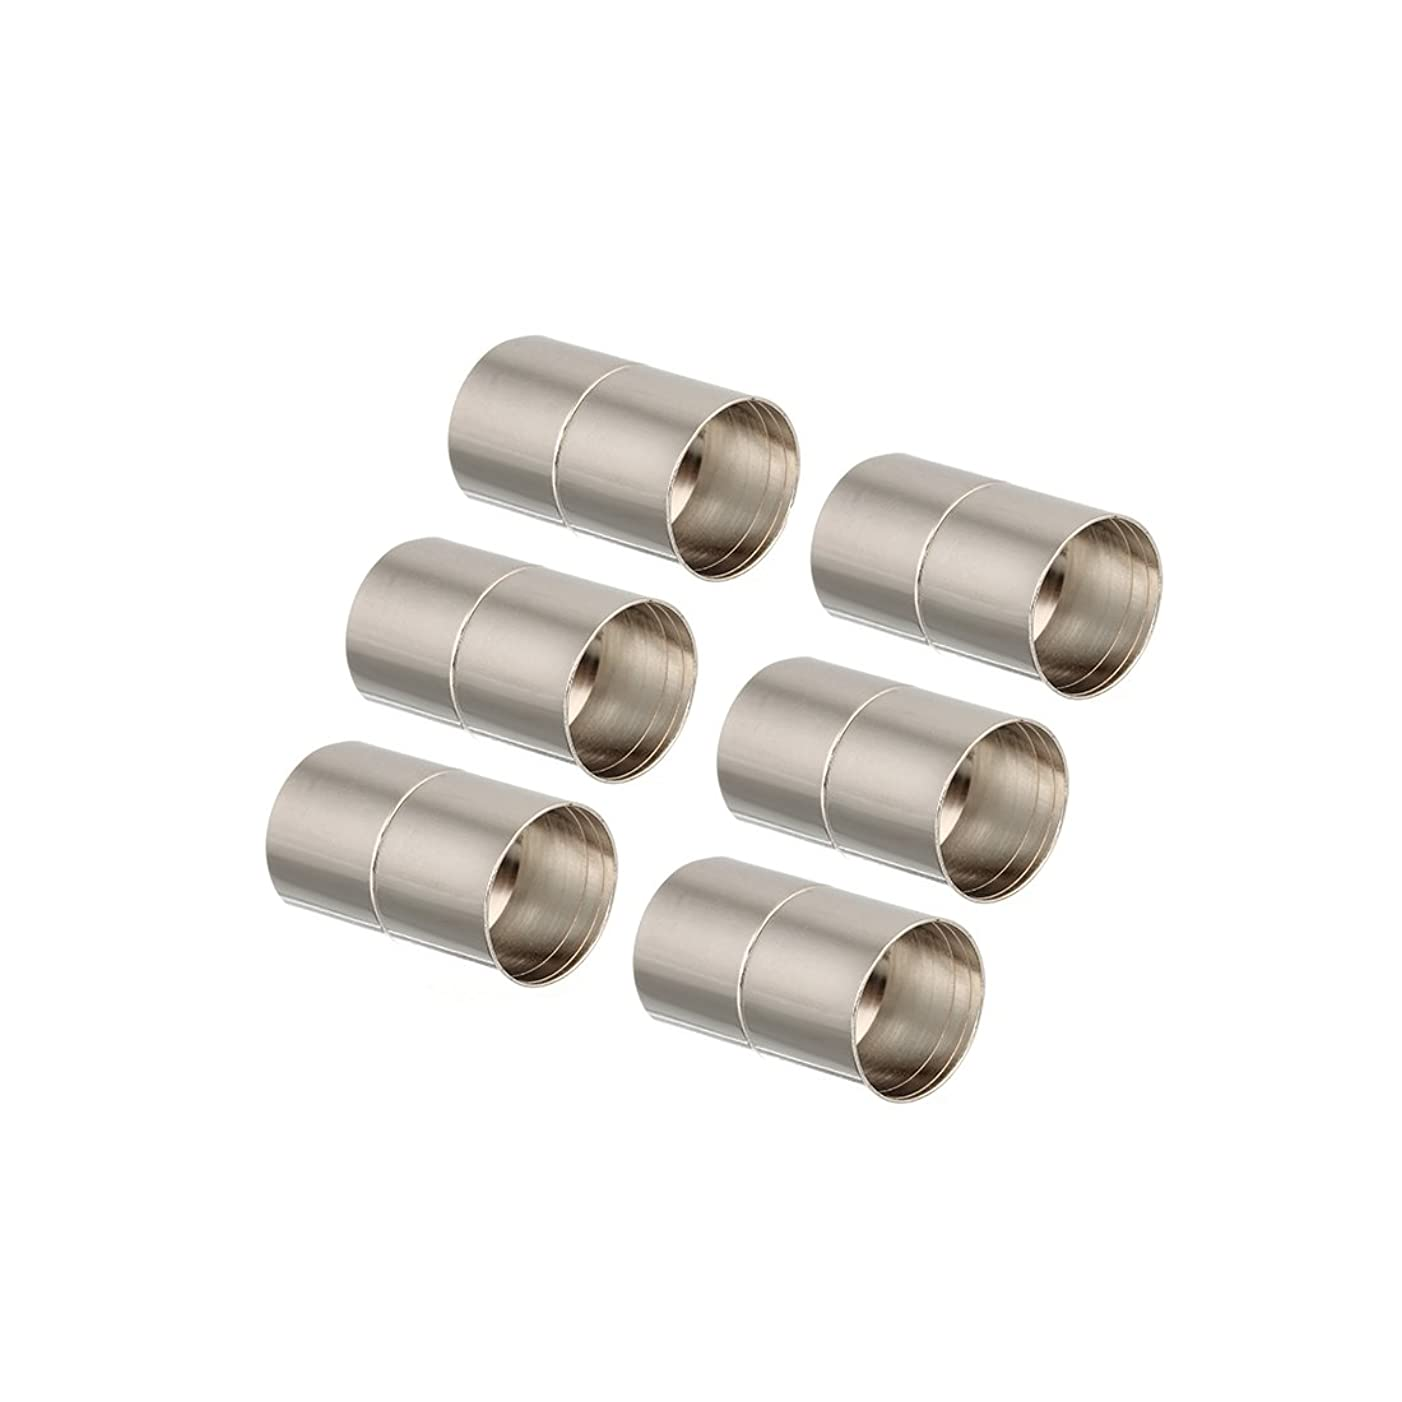 Linsoir Beads Rhodium Tone Inner Hole Size 10mm Glue-in Magnetic Clasps for 10mm Cords Pack of 10 Sets